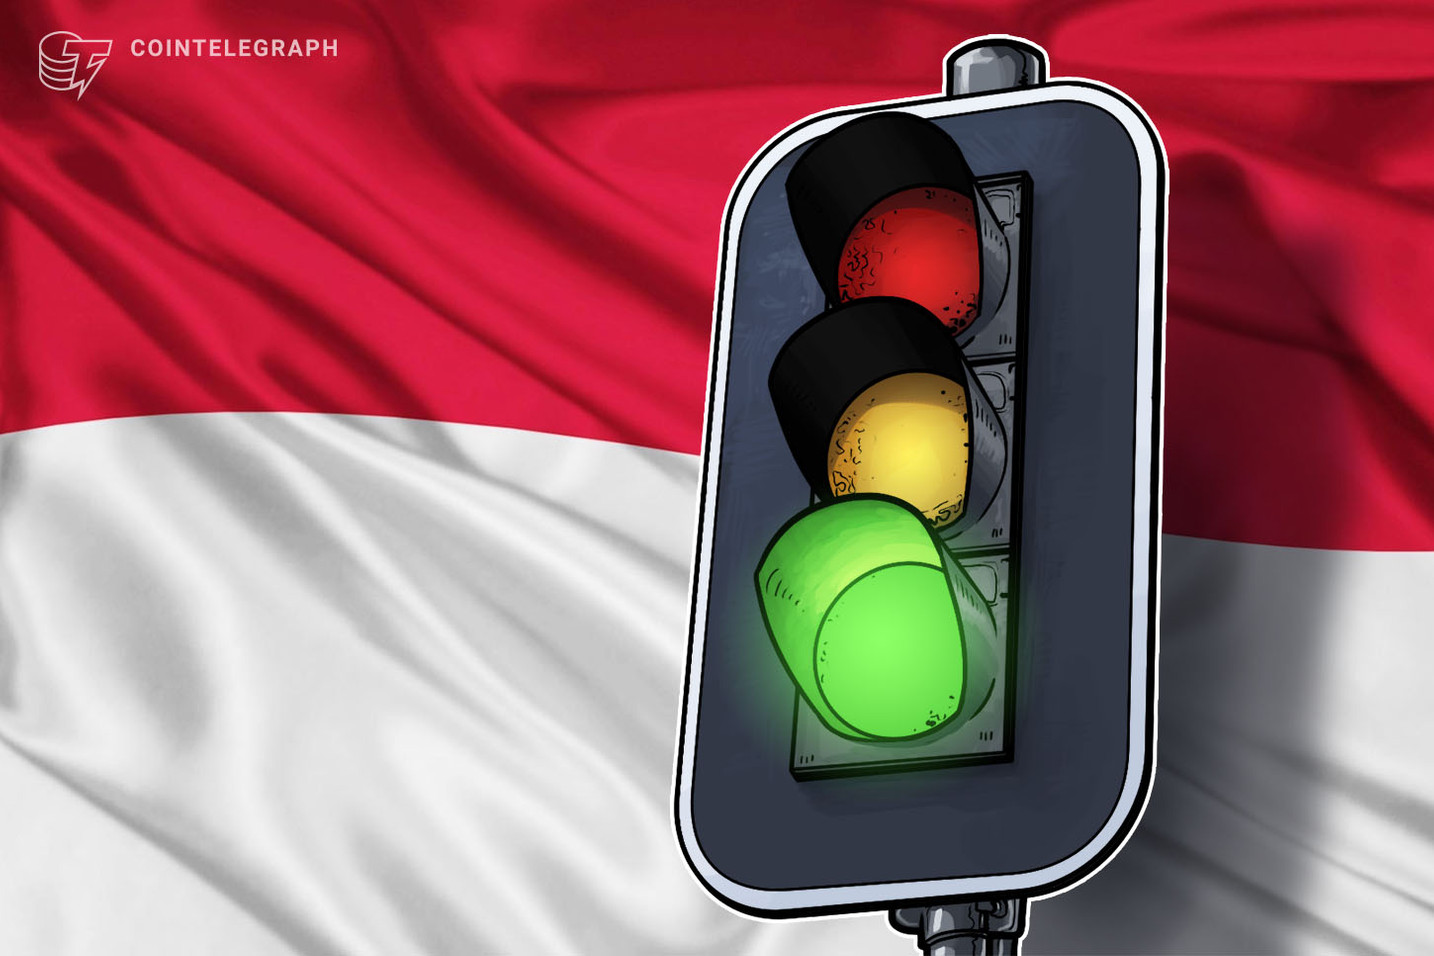 El regulador de commodities de Indonesia aprueba un exchange de criptomonedas de Asia-Pacífico